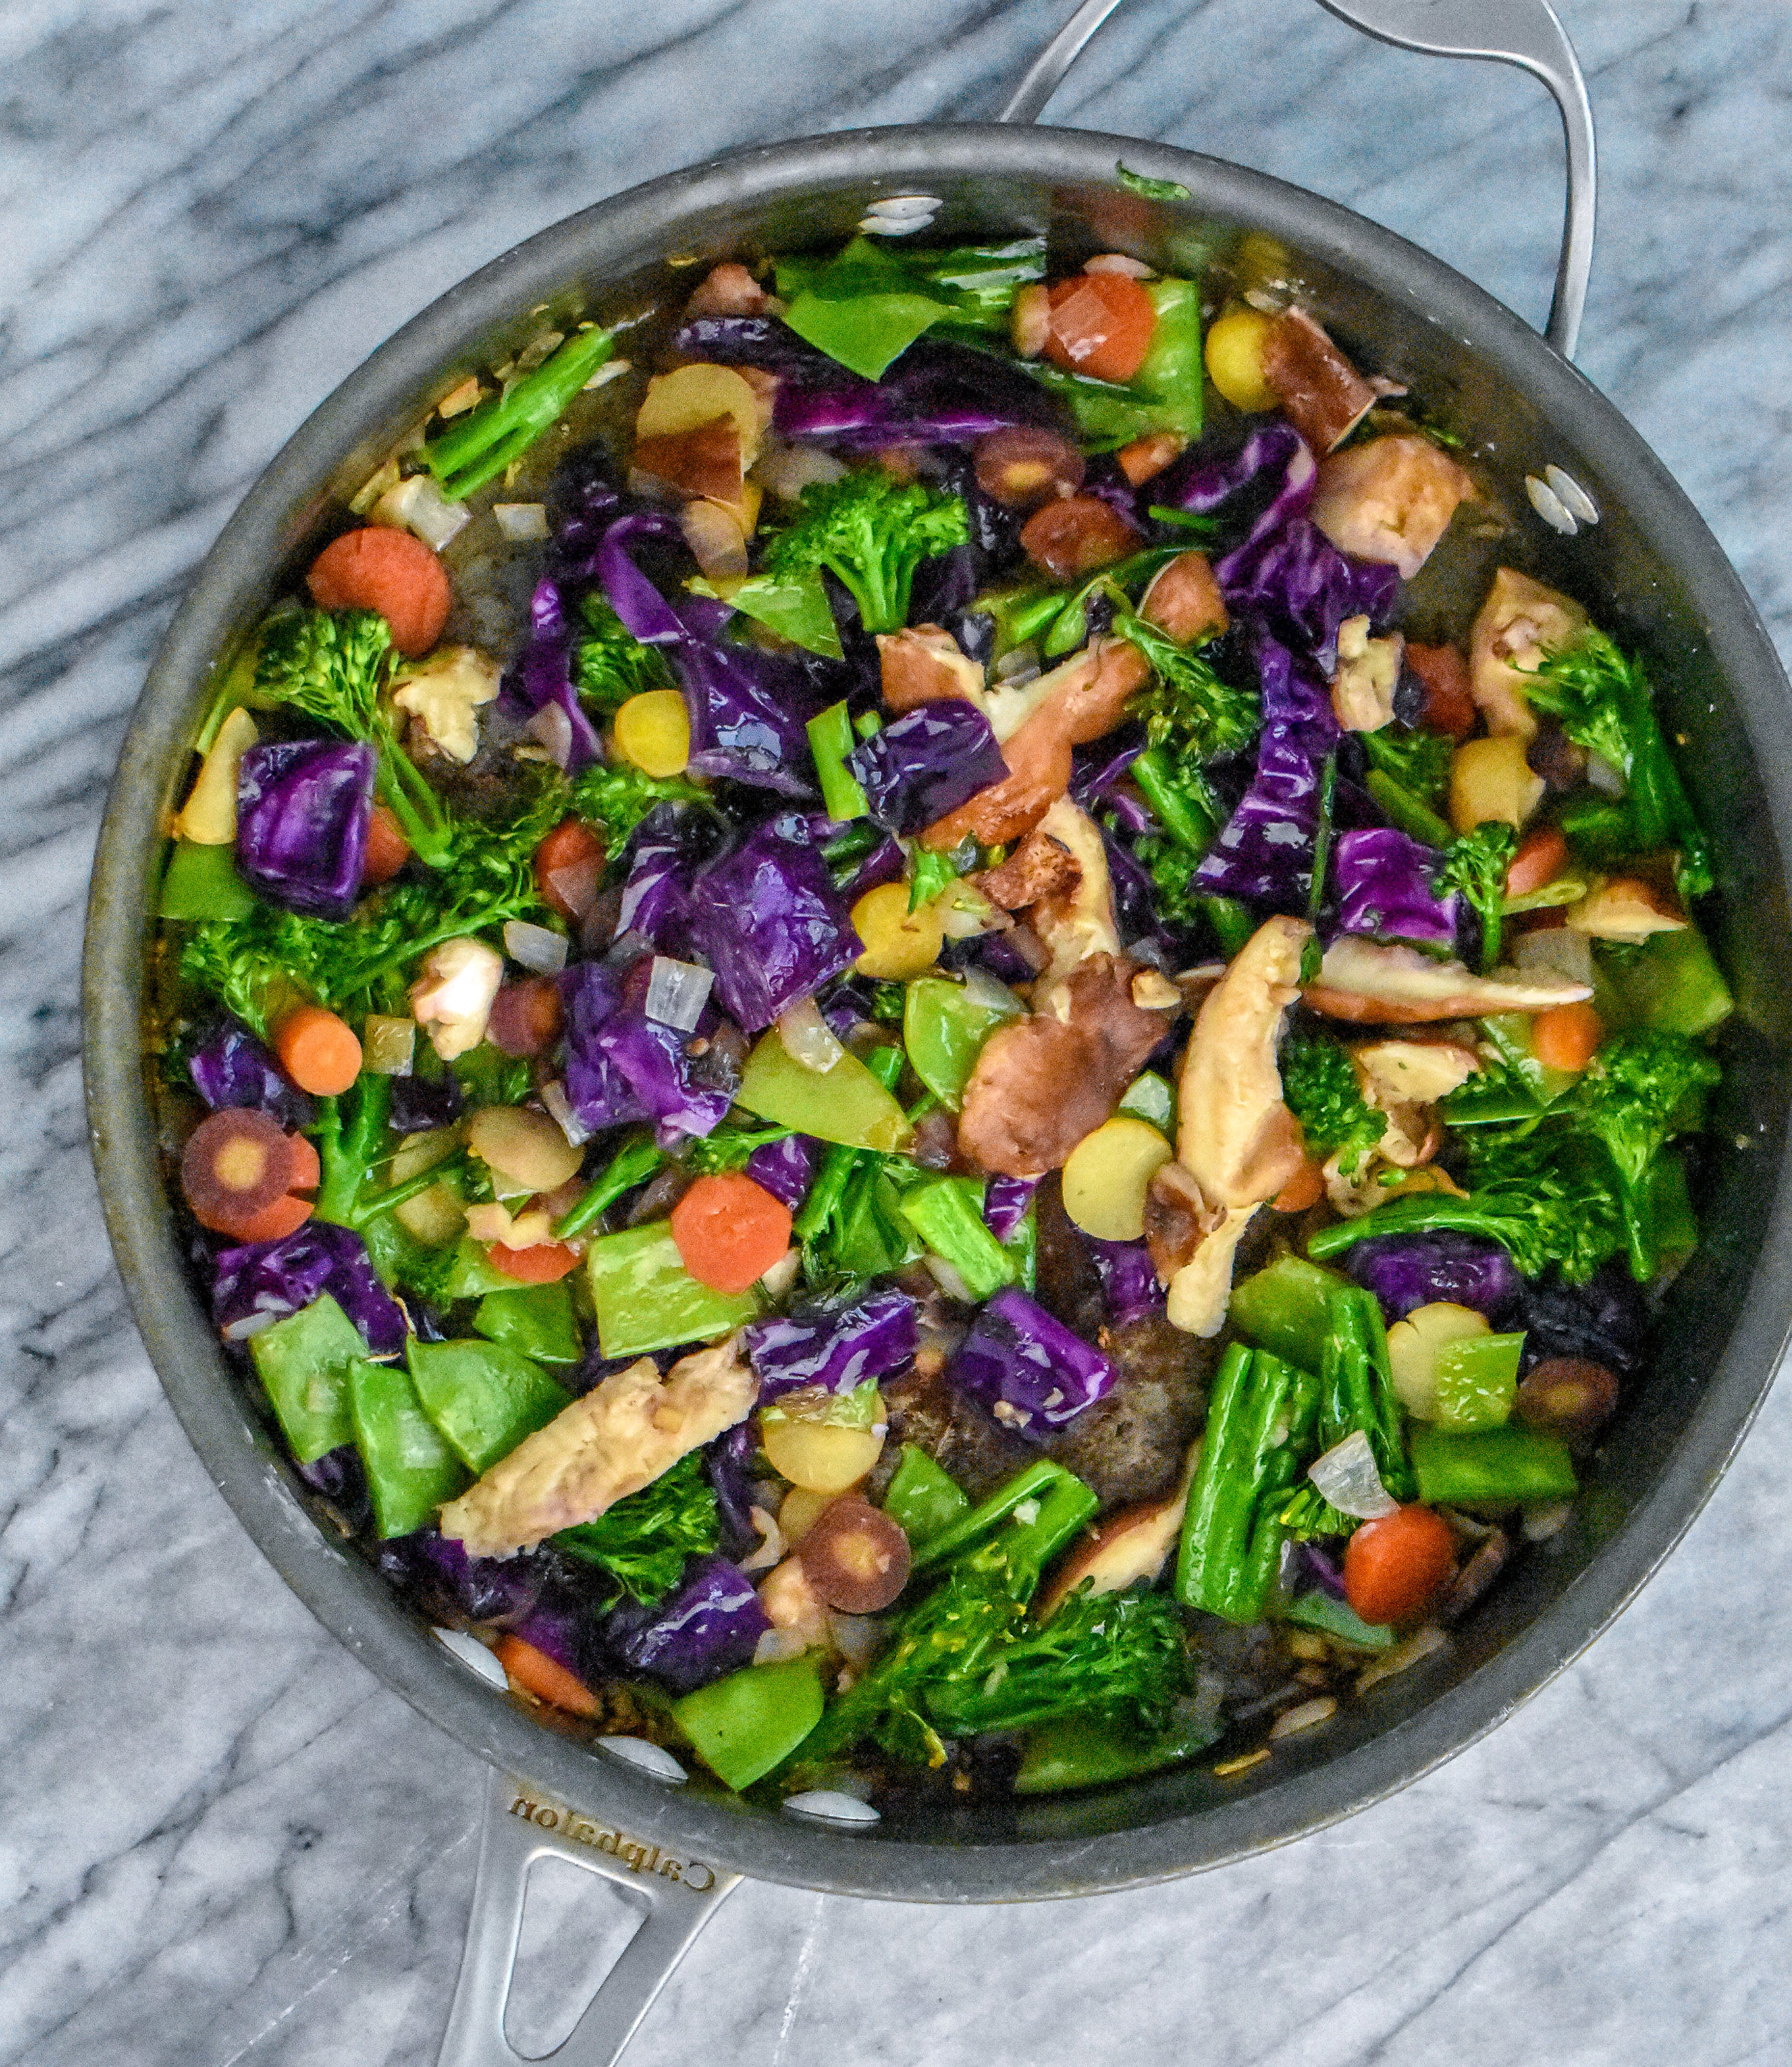 1. Add shallots, ginger, oil, and garlic to large frying pan. Cook for 4-5 minutes until the shallots have softened.Next, add in the cabbage. Cook for 60 seconds and then add the rest of the veggies. Cook for another 5-6 minutes. Add a pinch of salt + pepper. Set aside.